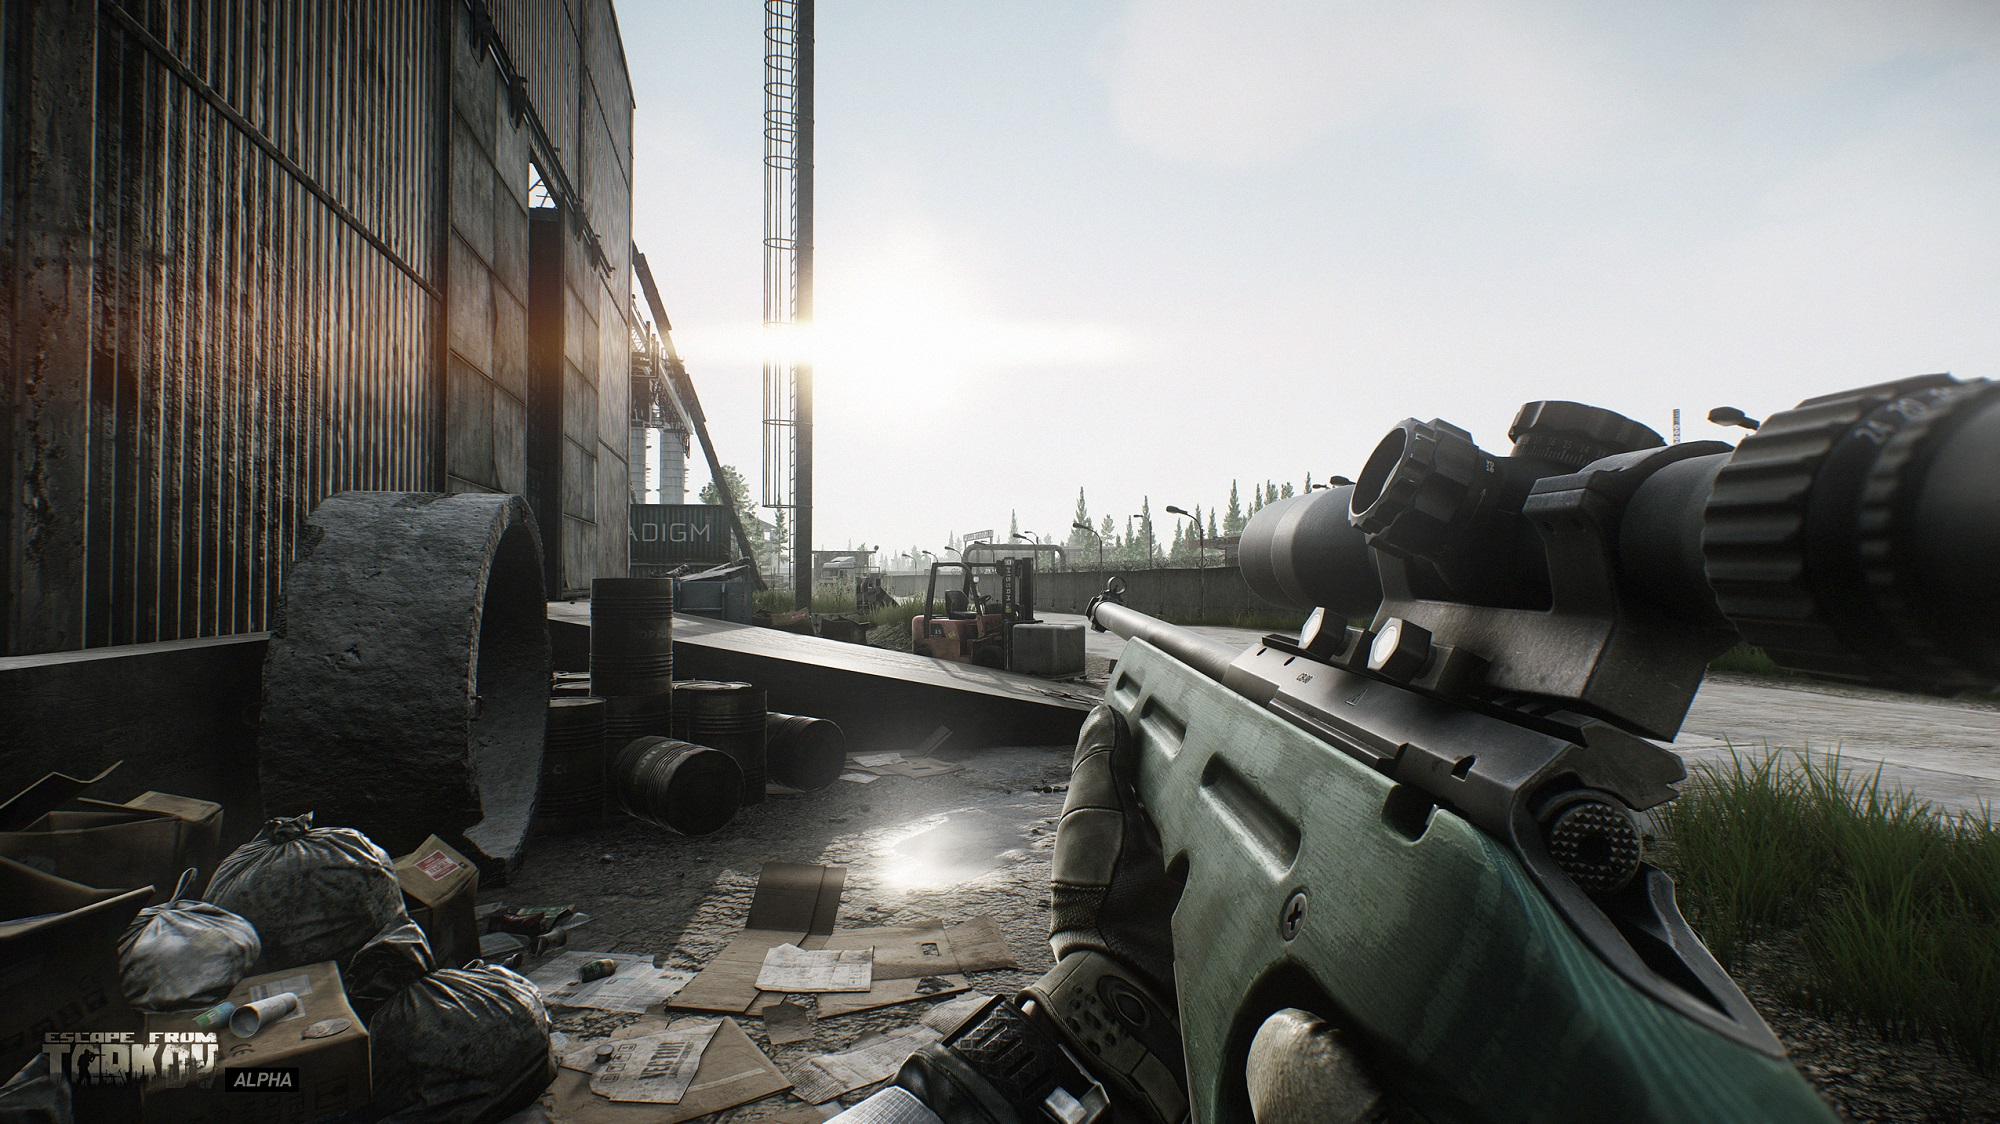 54584_03_escape-tarkov-looks-one-best-games